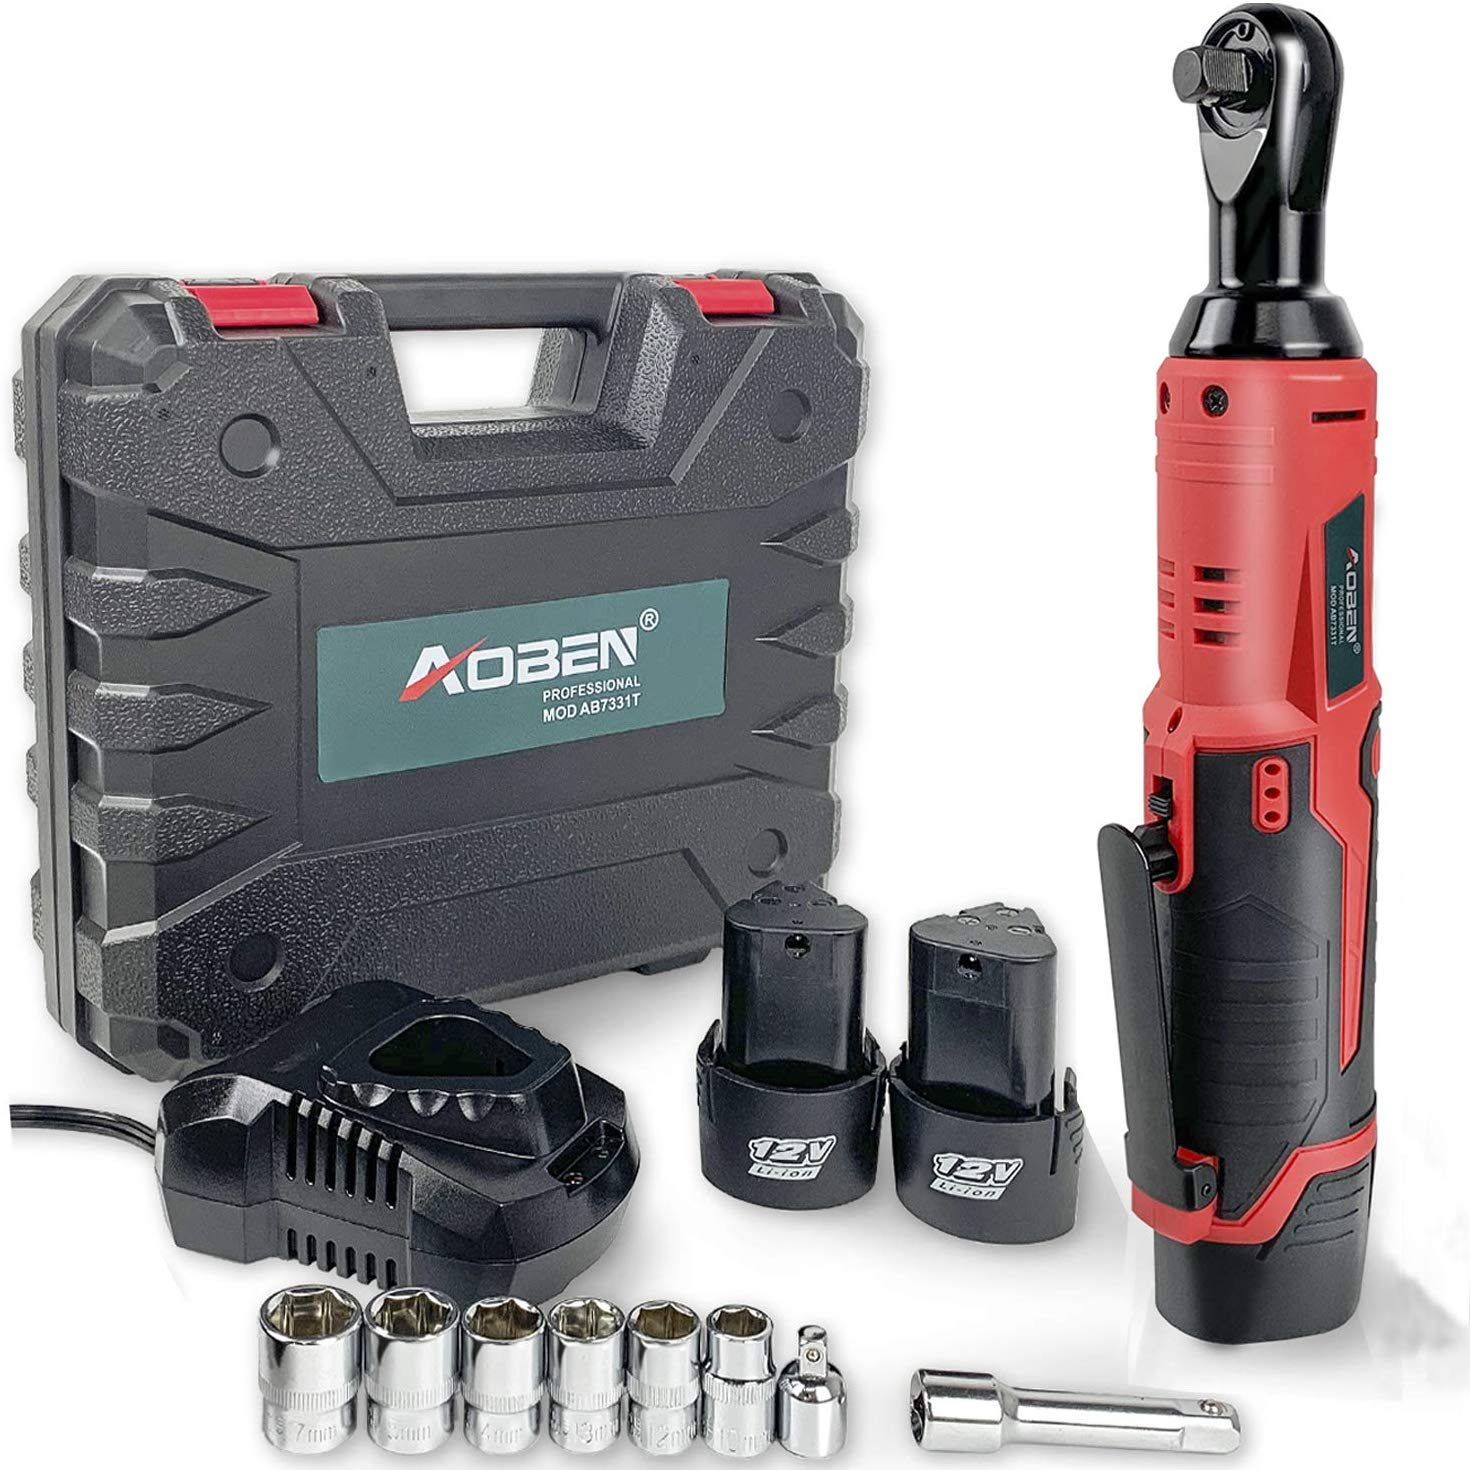 Best Battery Operated Ratchet: Adoben AB7331T Set